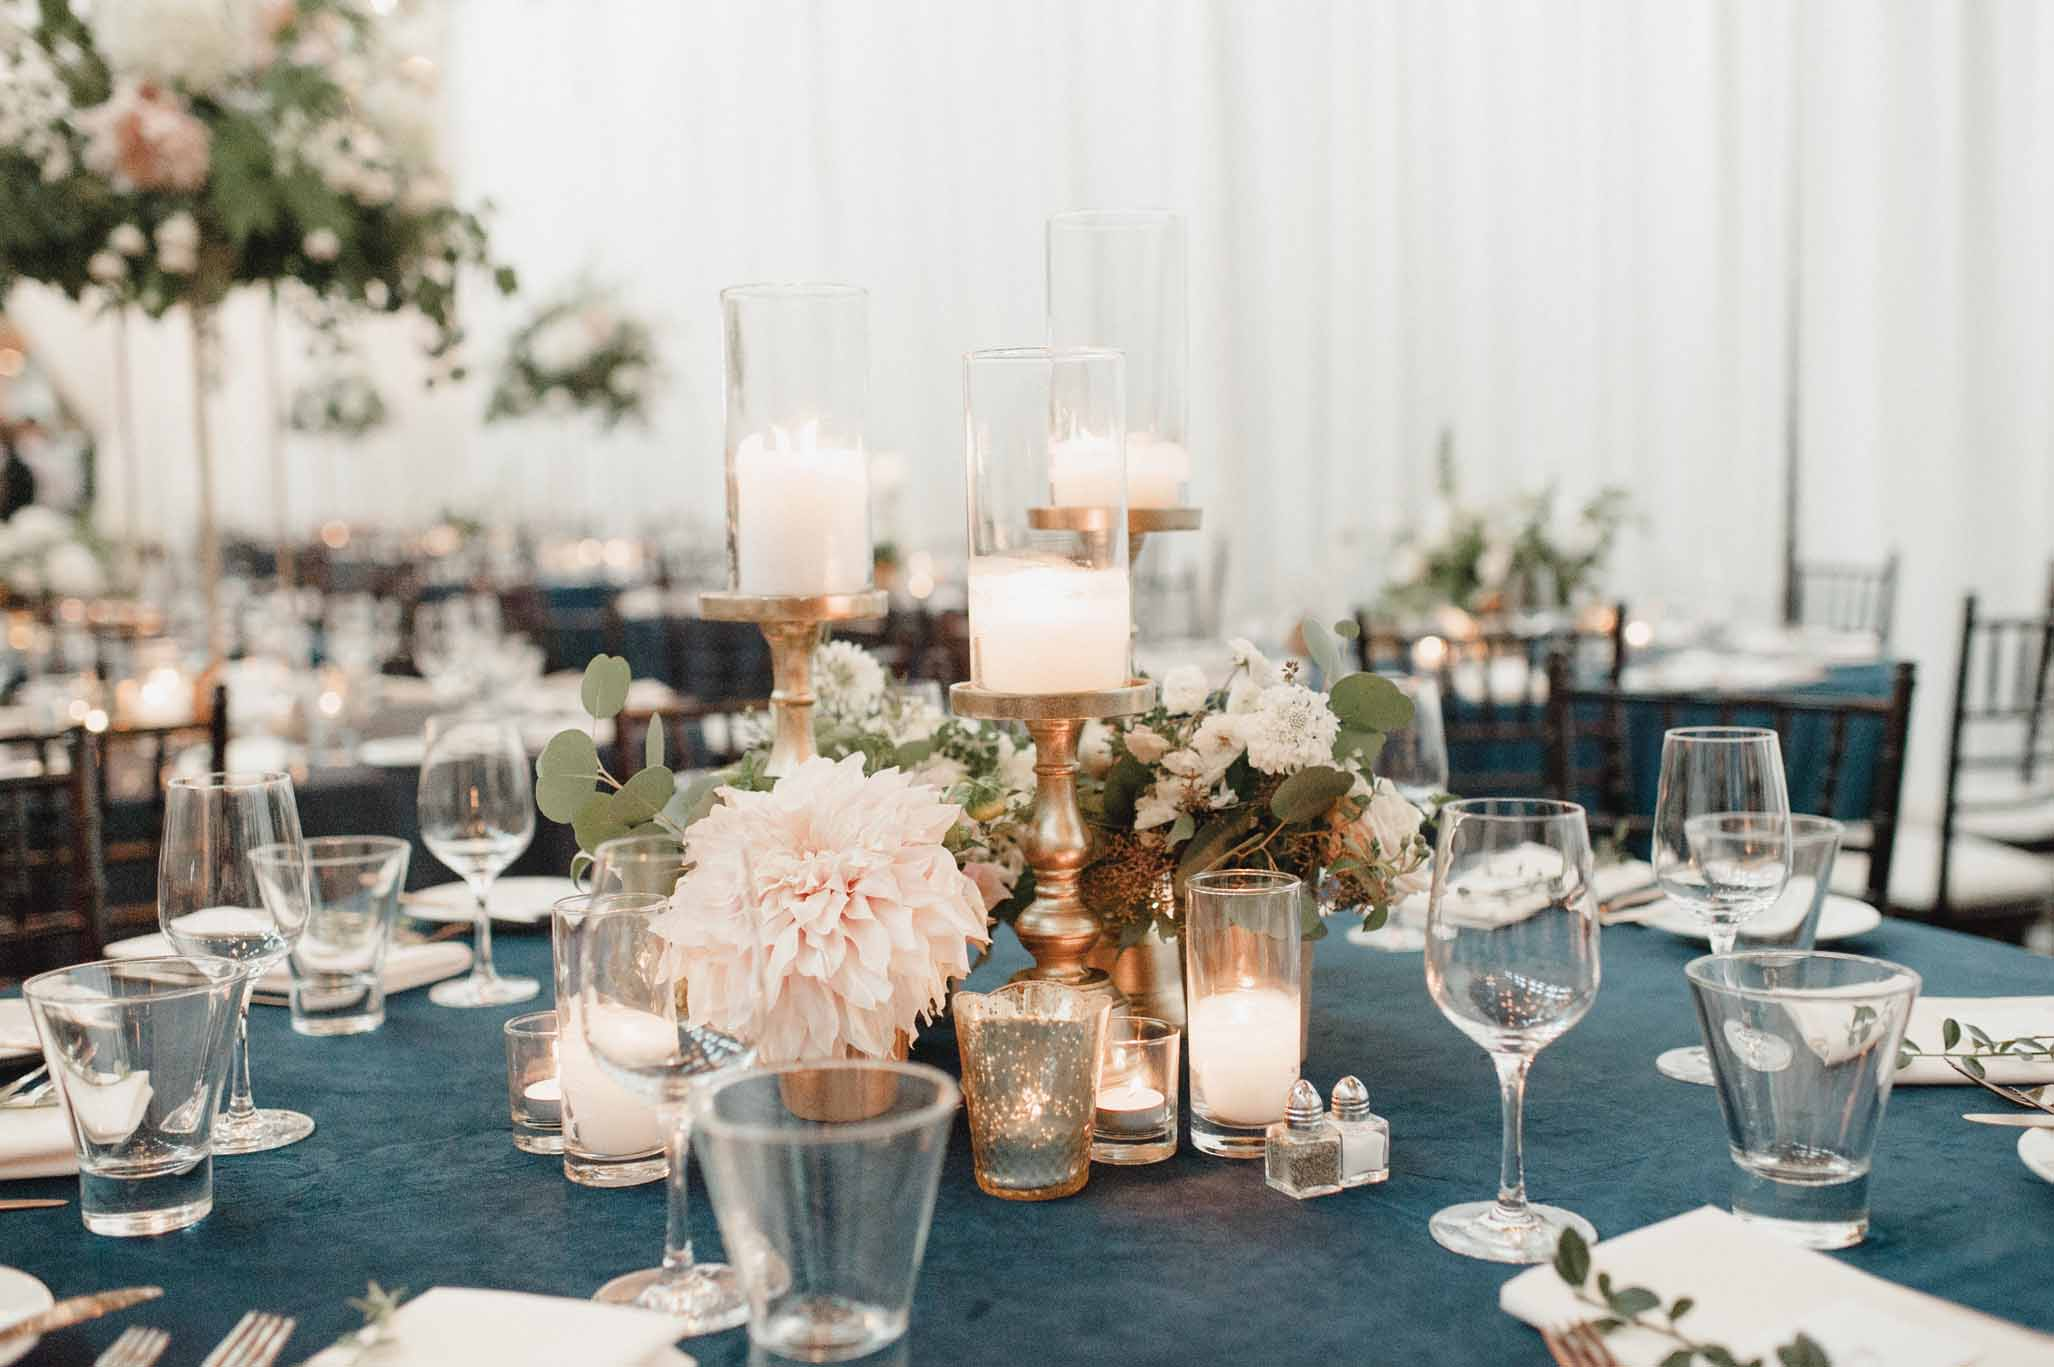 Composite style centerpiece with candles and flowers on blue linen - Greenery SoDo Park Wedding Flora Nova Design Seattle